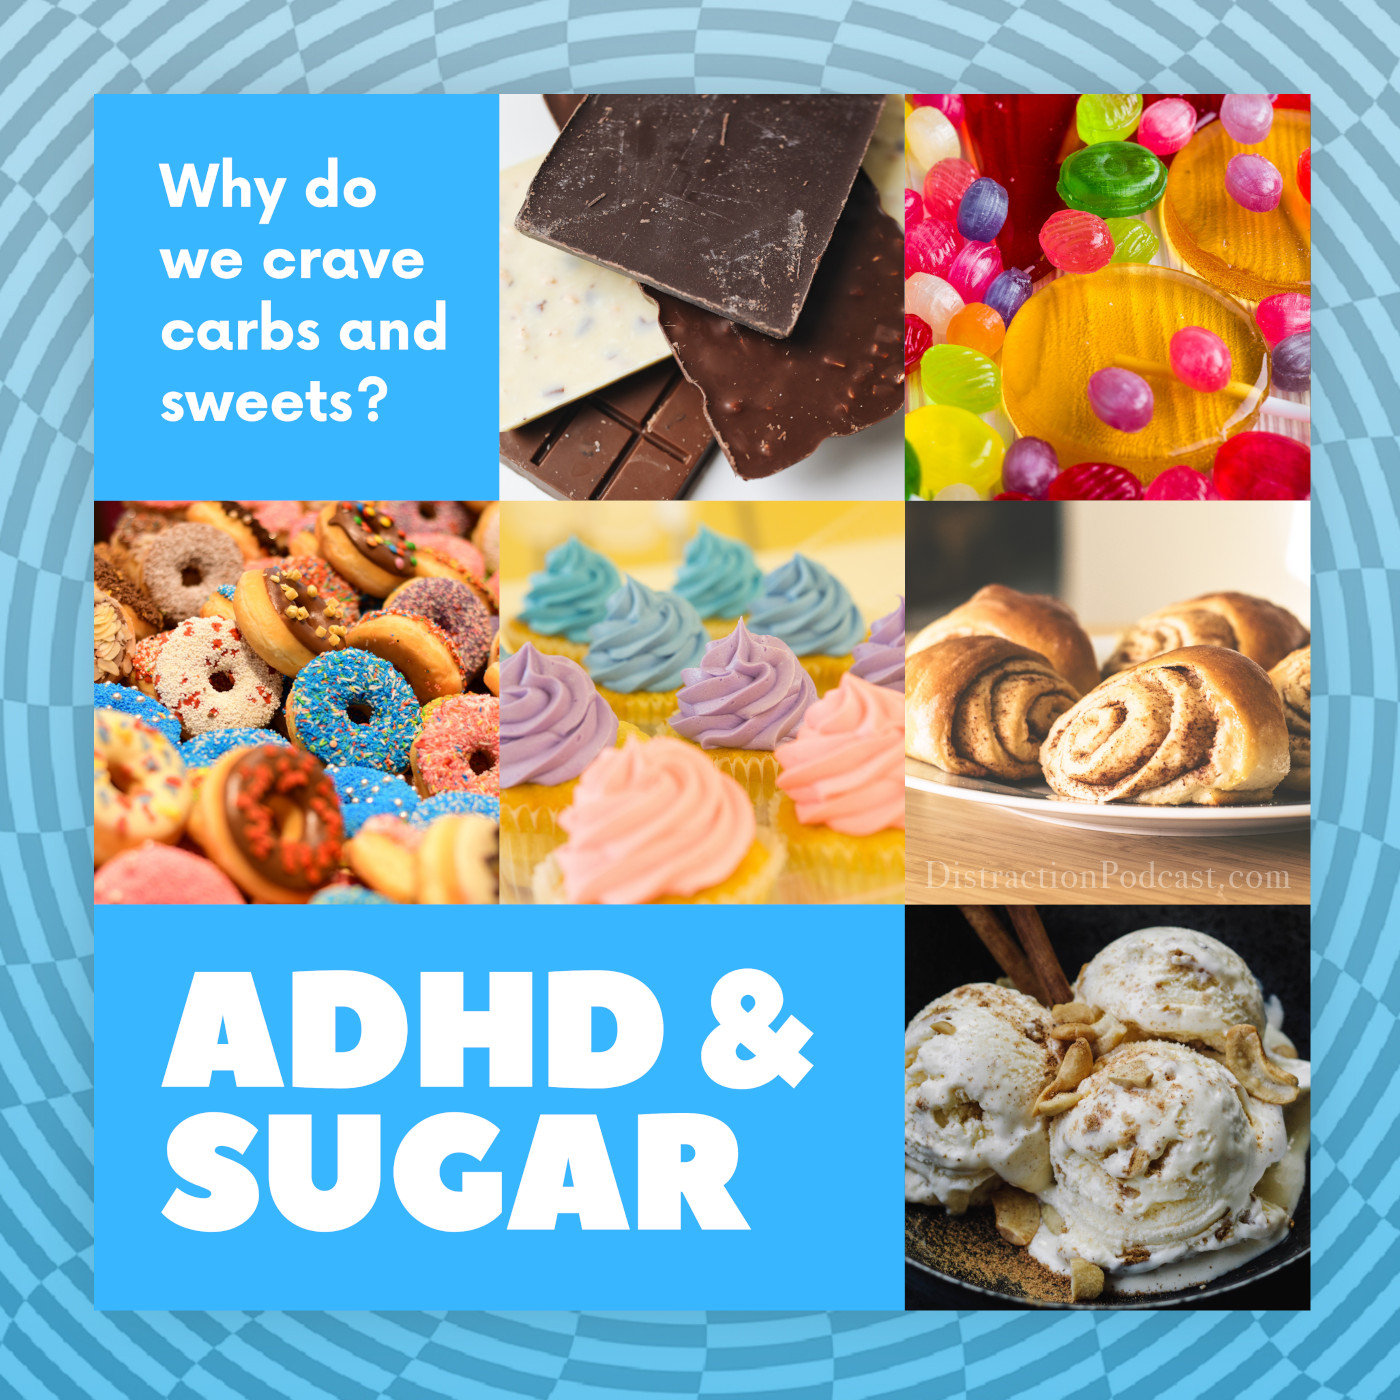 Why ADHD Brains Crave Sugar and Carbs